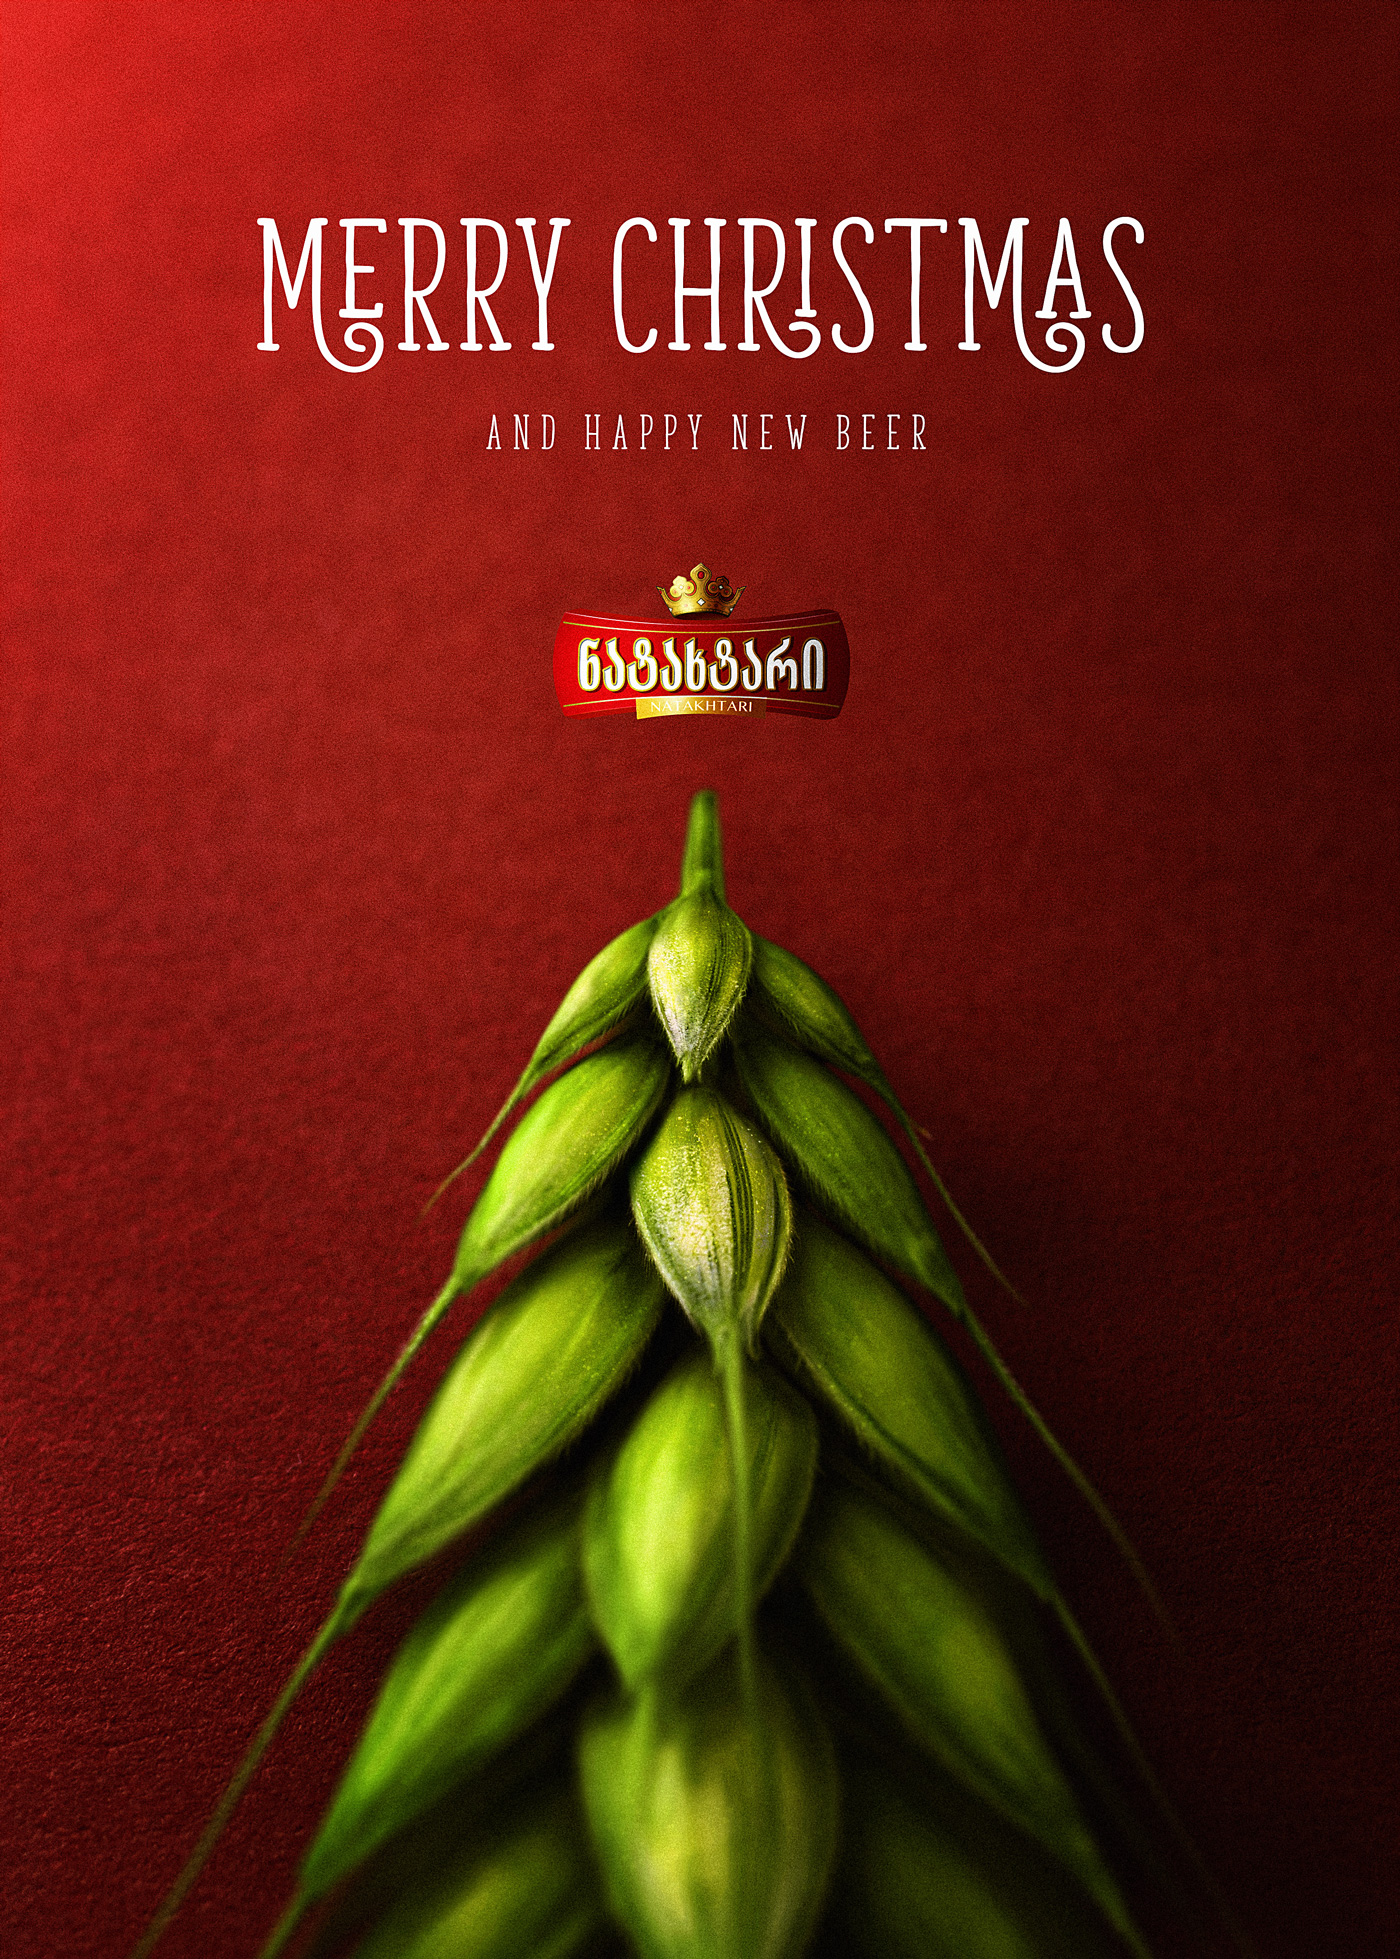 NT_Merry_Christmas_Poster_01_w1400_quality80